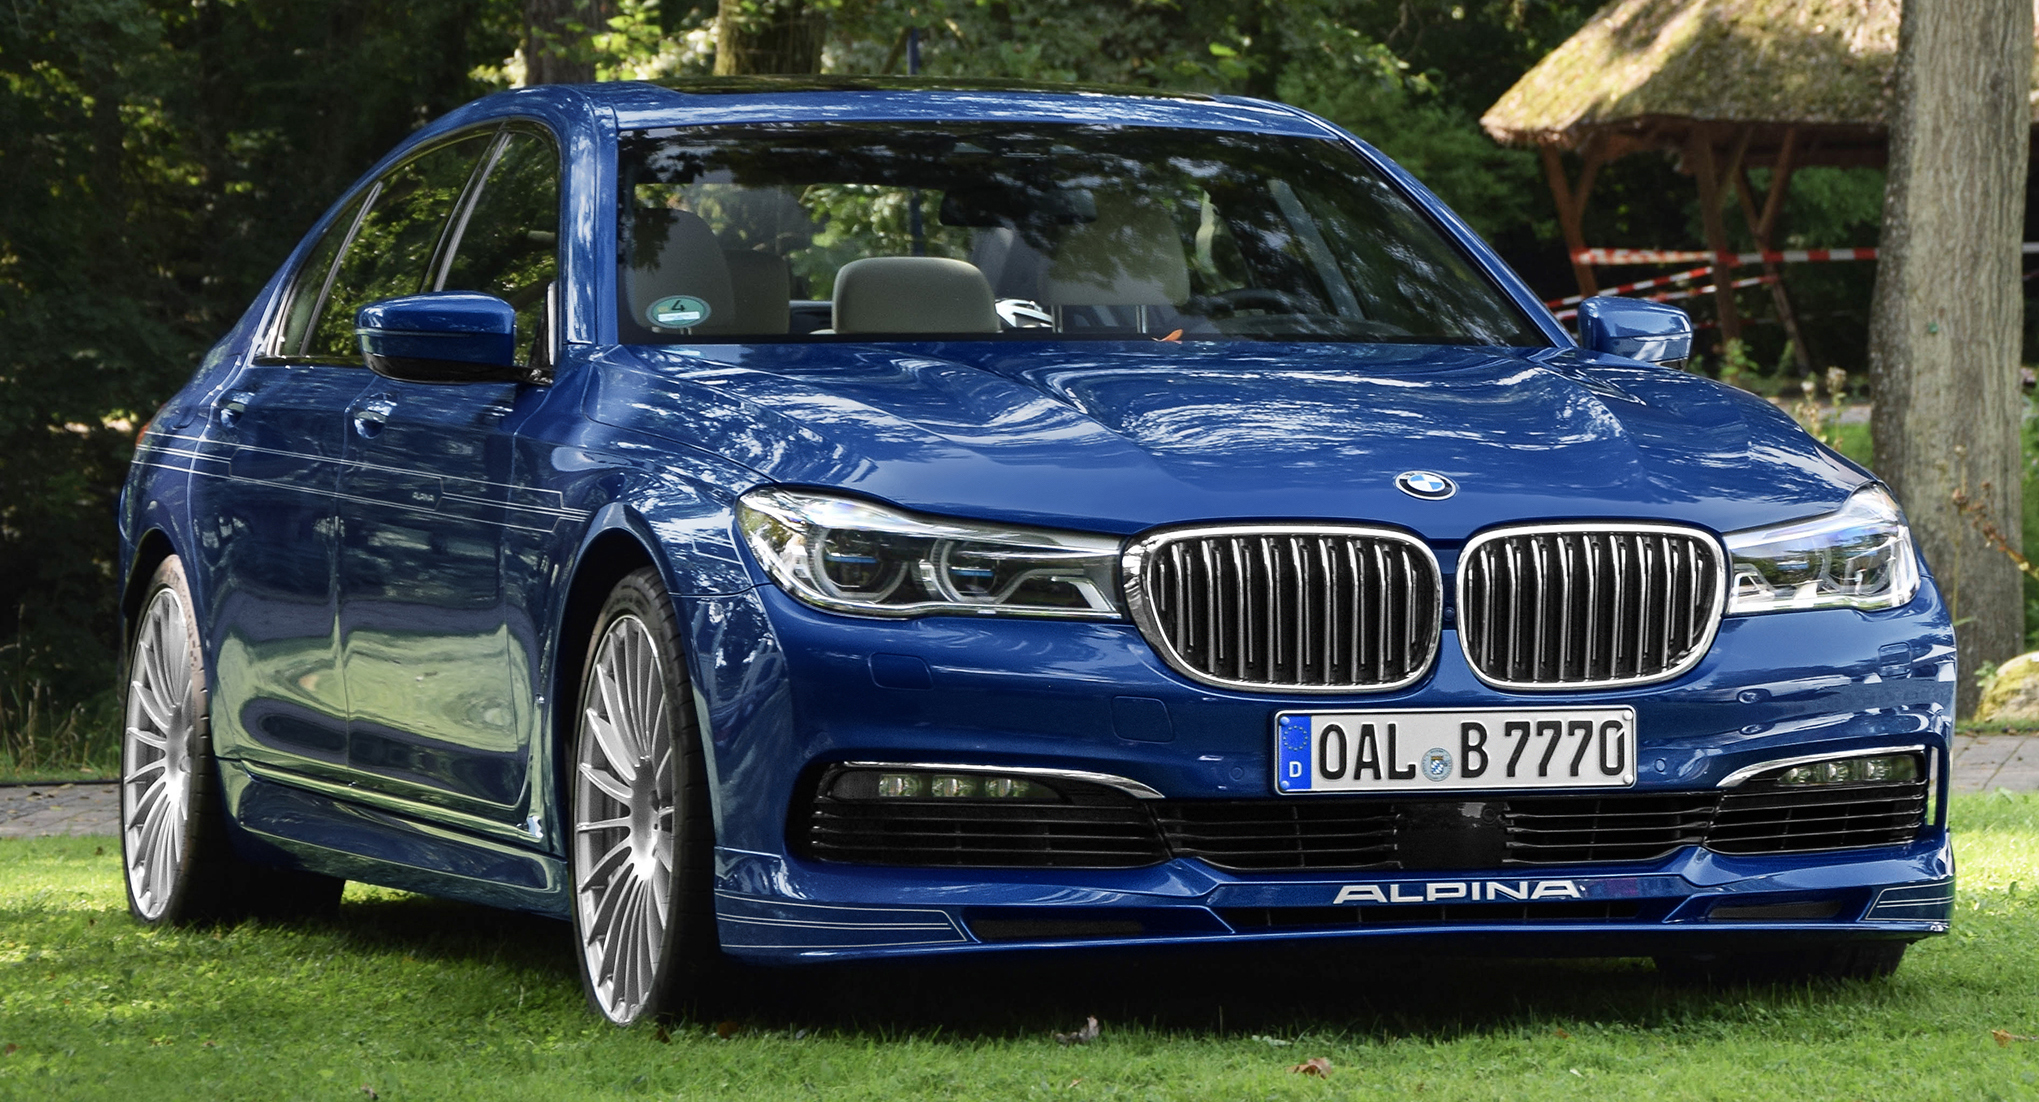 Datei Bmw Alpina B7 Biturbo G12 Jpg Wikipedia